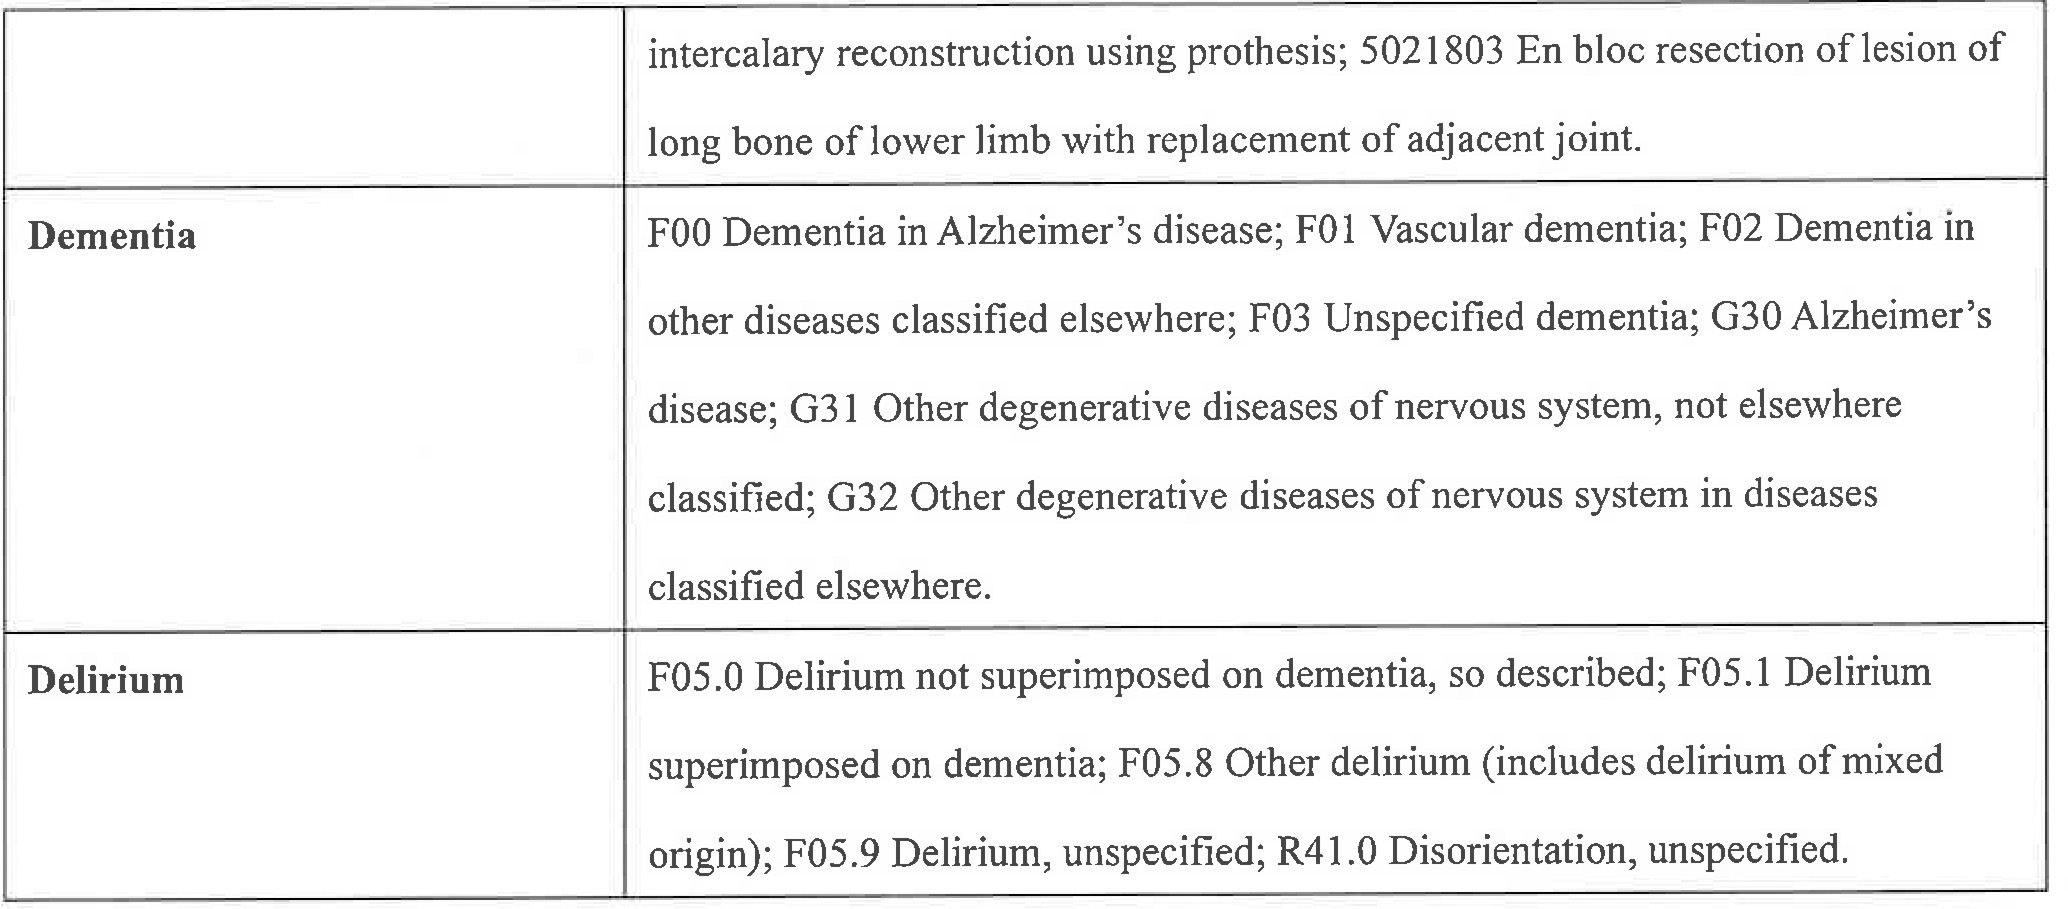 ICD-10-AM codes for primary procedures to joint replacement, dementia, and postoperative delirium. (Available in the public domain: Australian Institute of Health and Welfare. (2019). Principal diagnosis data cubes. Retrieved from https://www.aihw.gov.au/reports/hospitals/principal-diagnosis-data-cubes/contents/data-cubes)